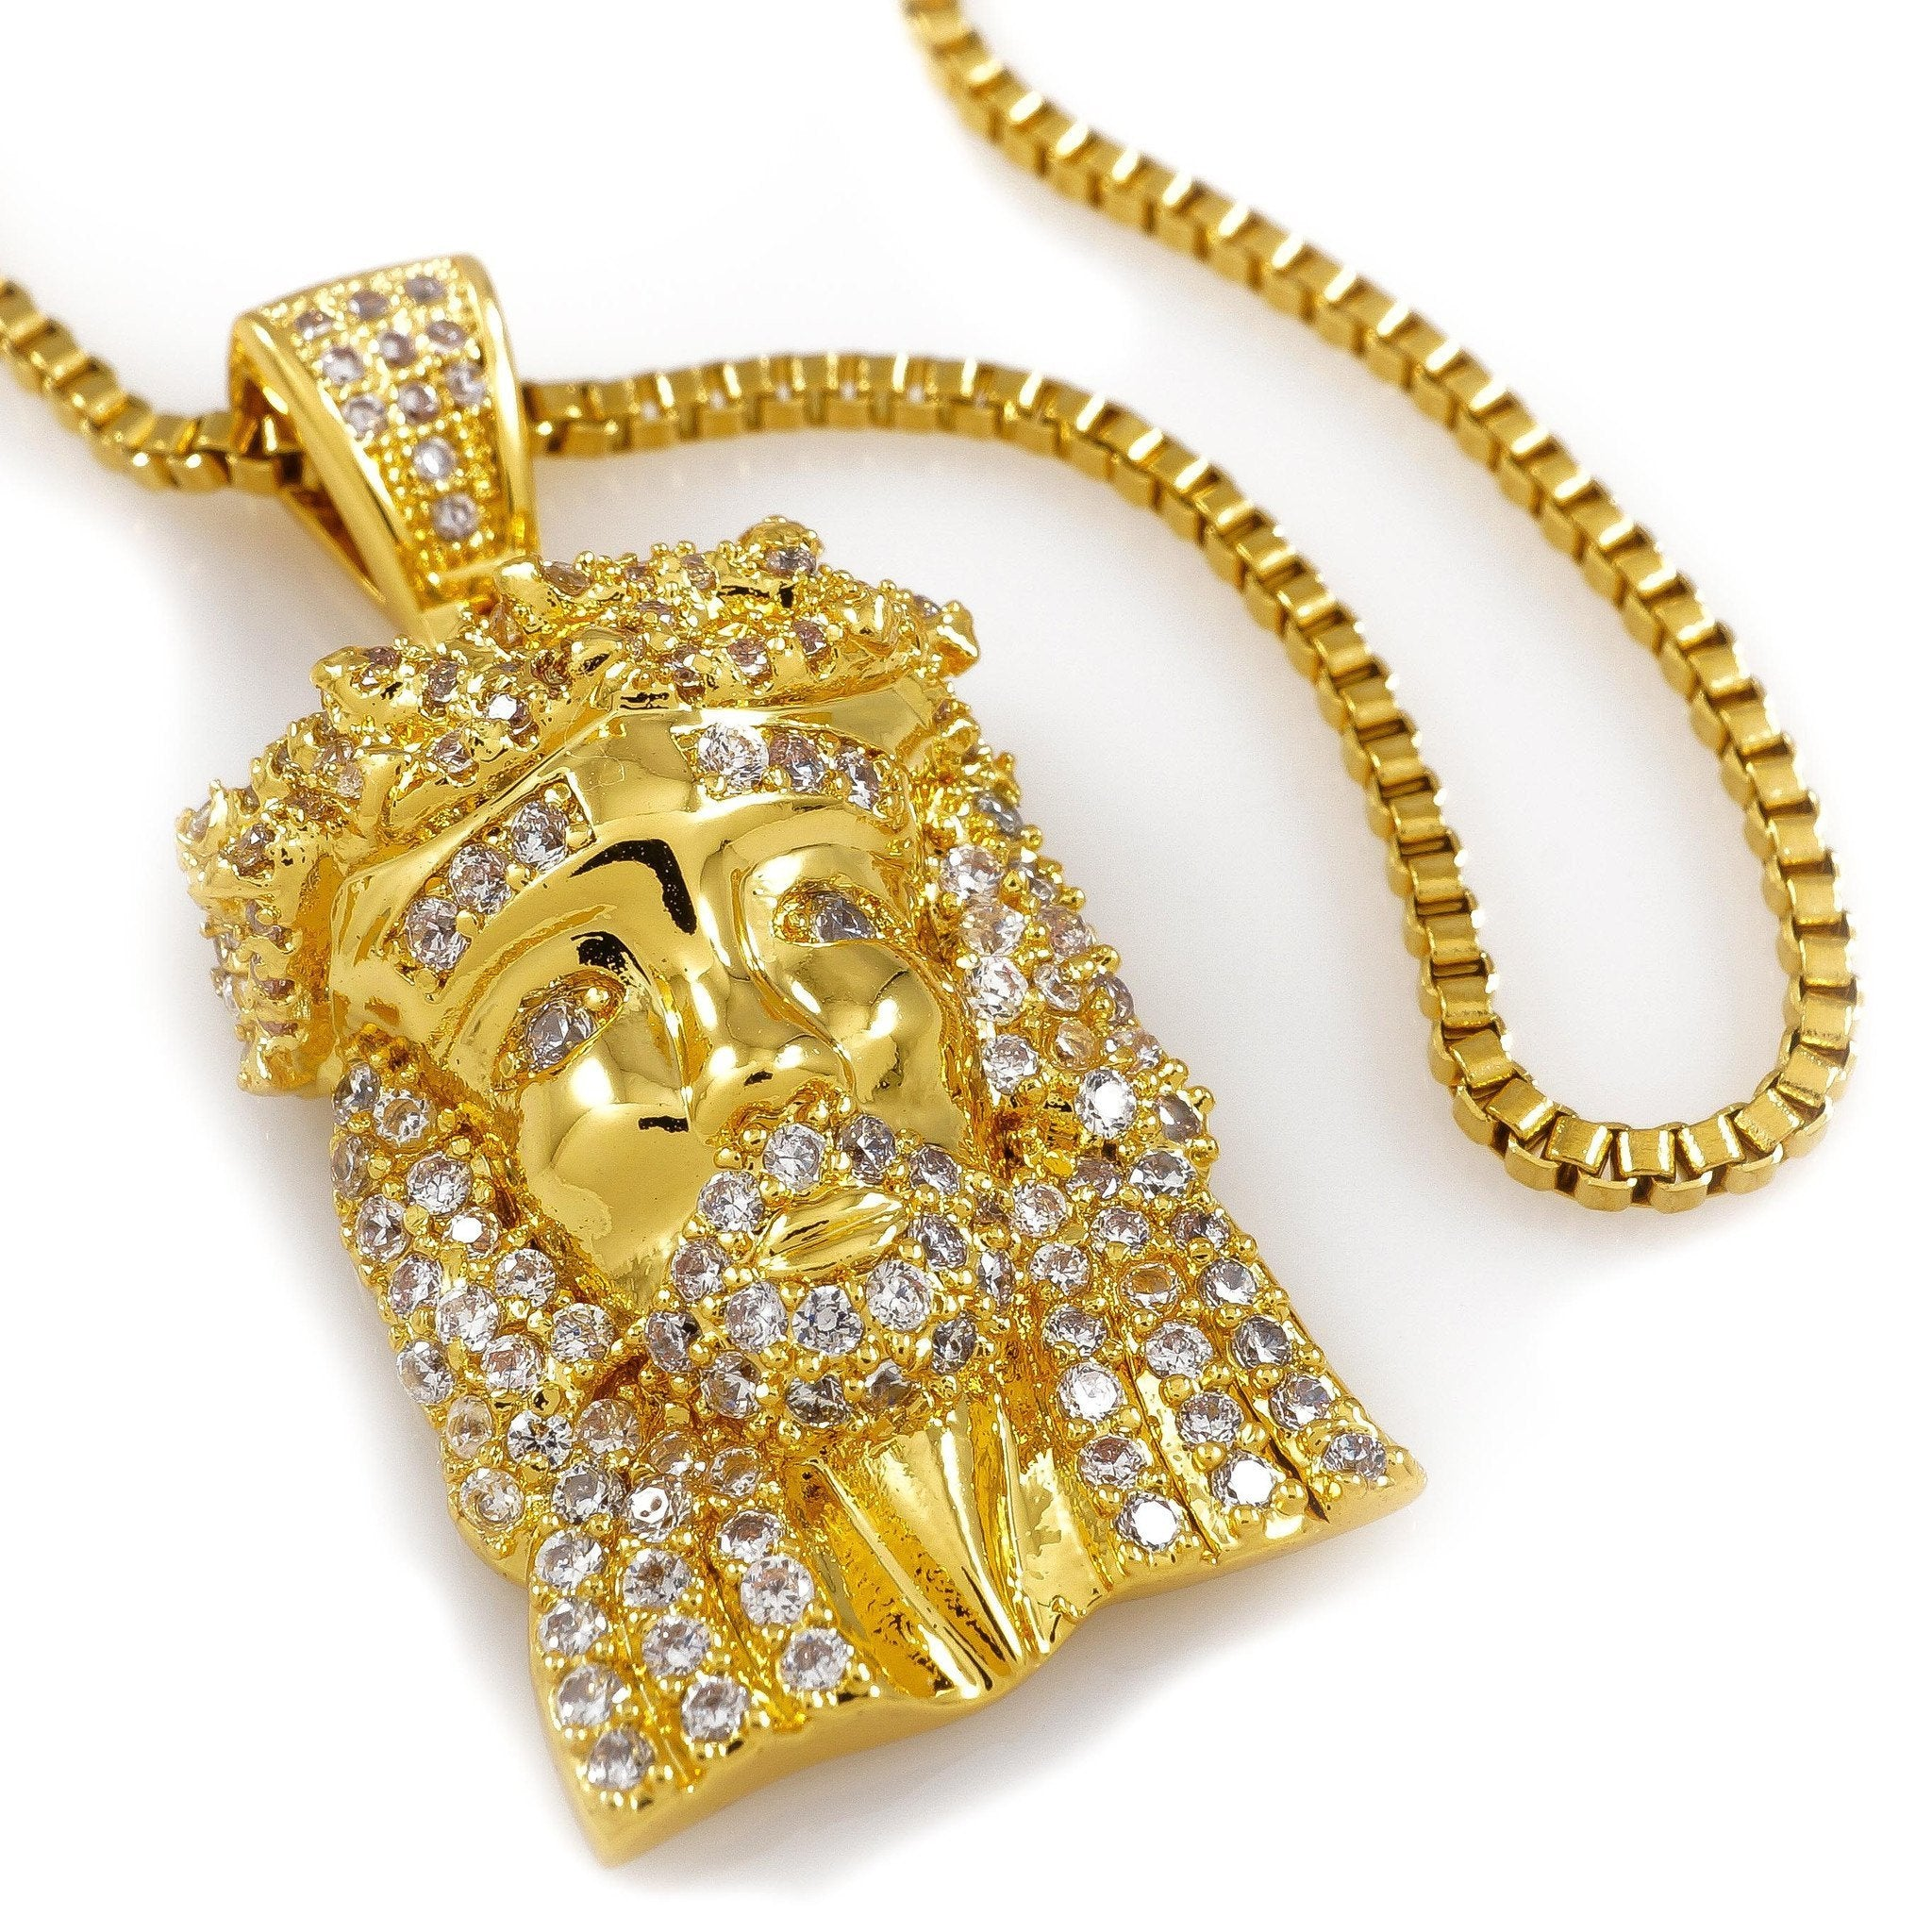 18k Gold Iced Mini Jesus Piece 1 With Box Chain